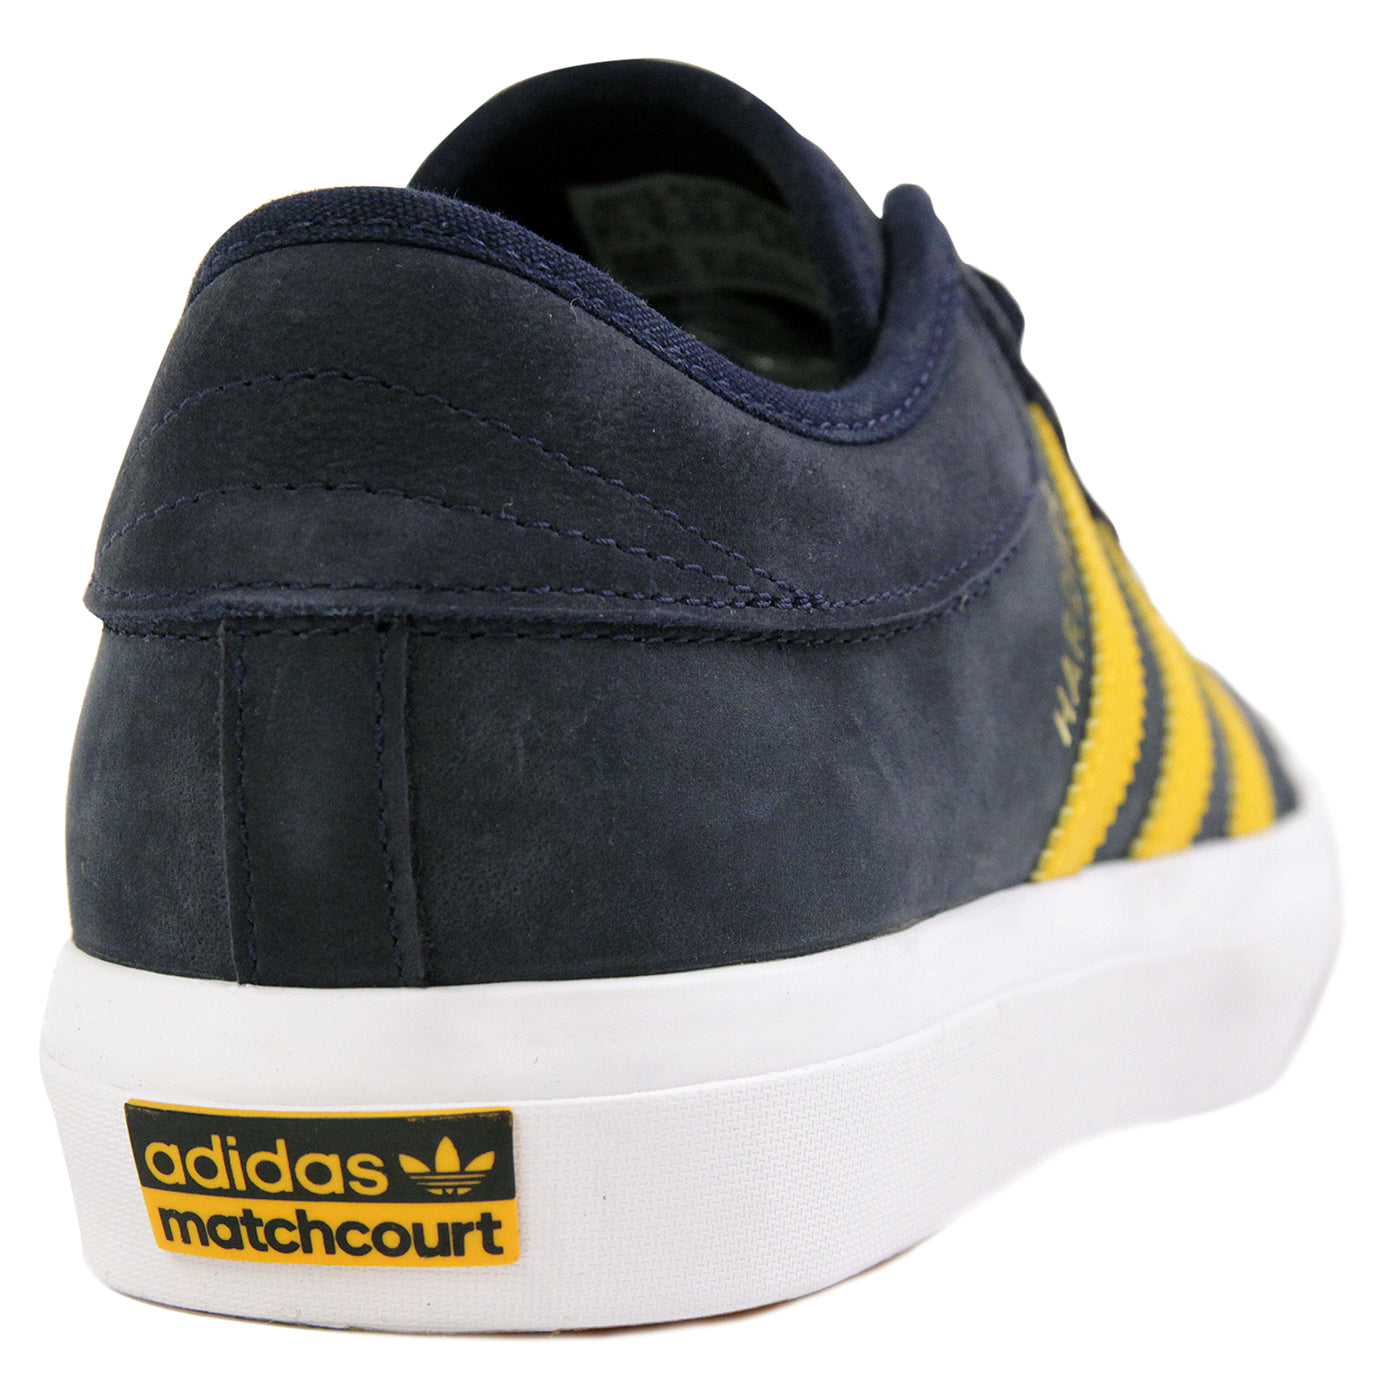 check out 97bcb 348be Adidas Skateboarding x Hardies Hardware Matchcourt Shoes - Collegiate Navy  / Customized / Footwear White. Size Charts